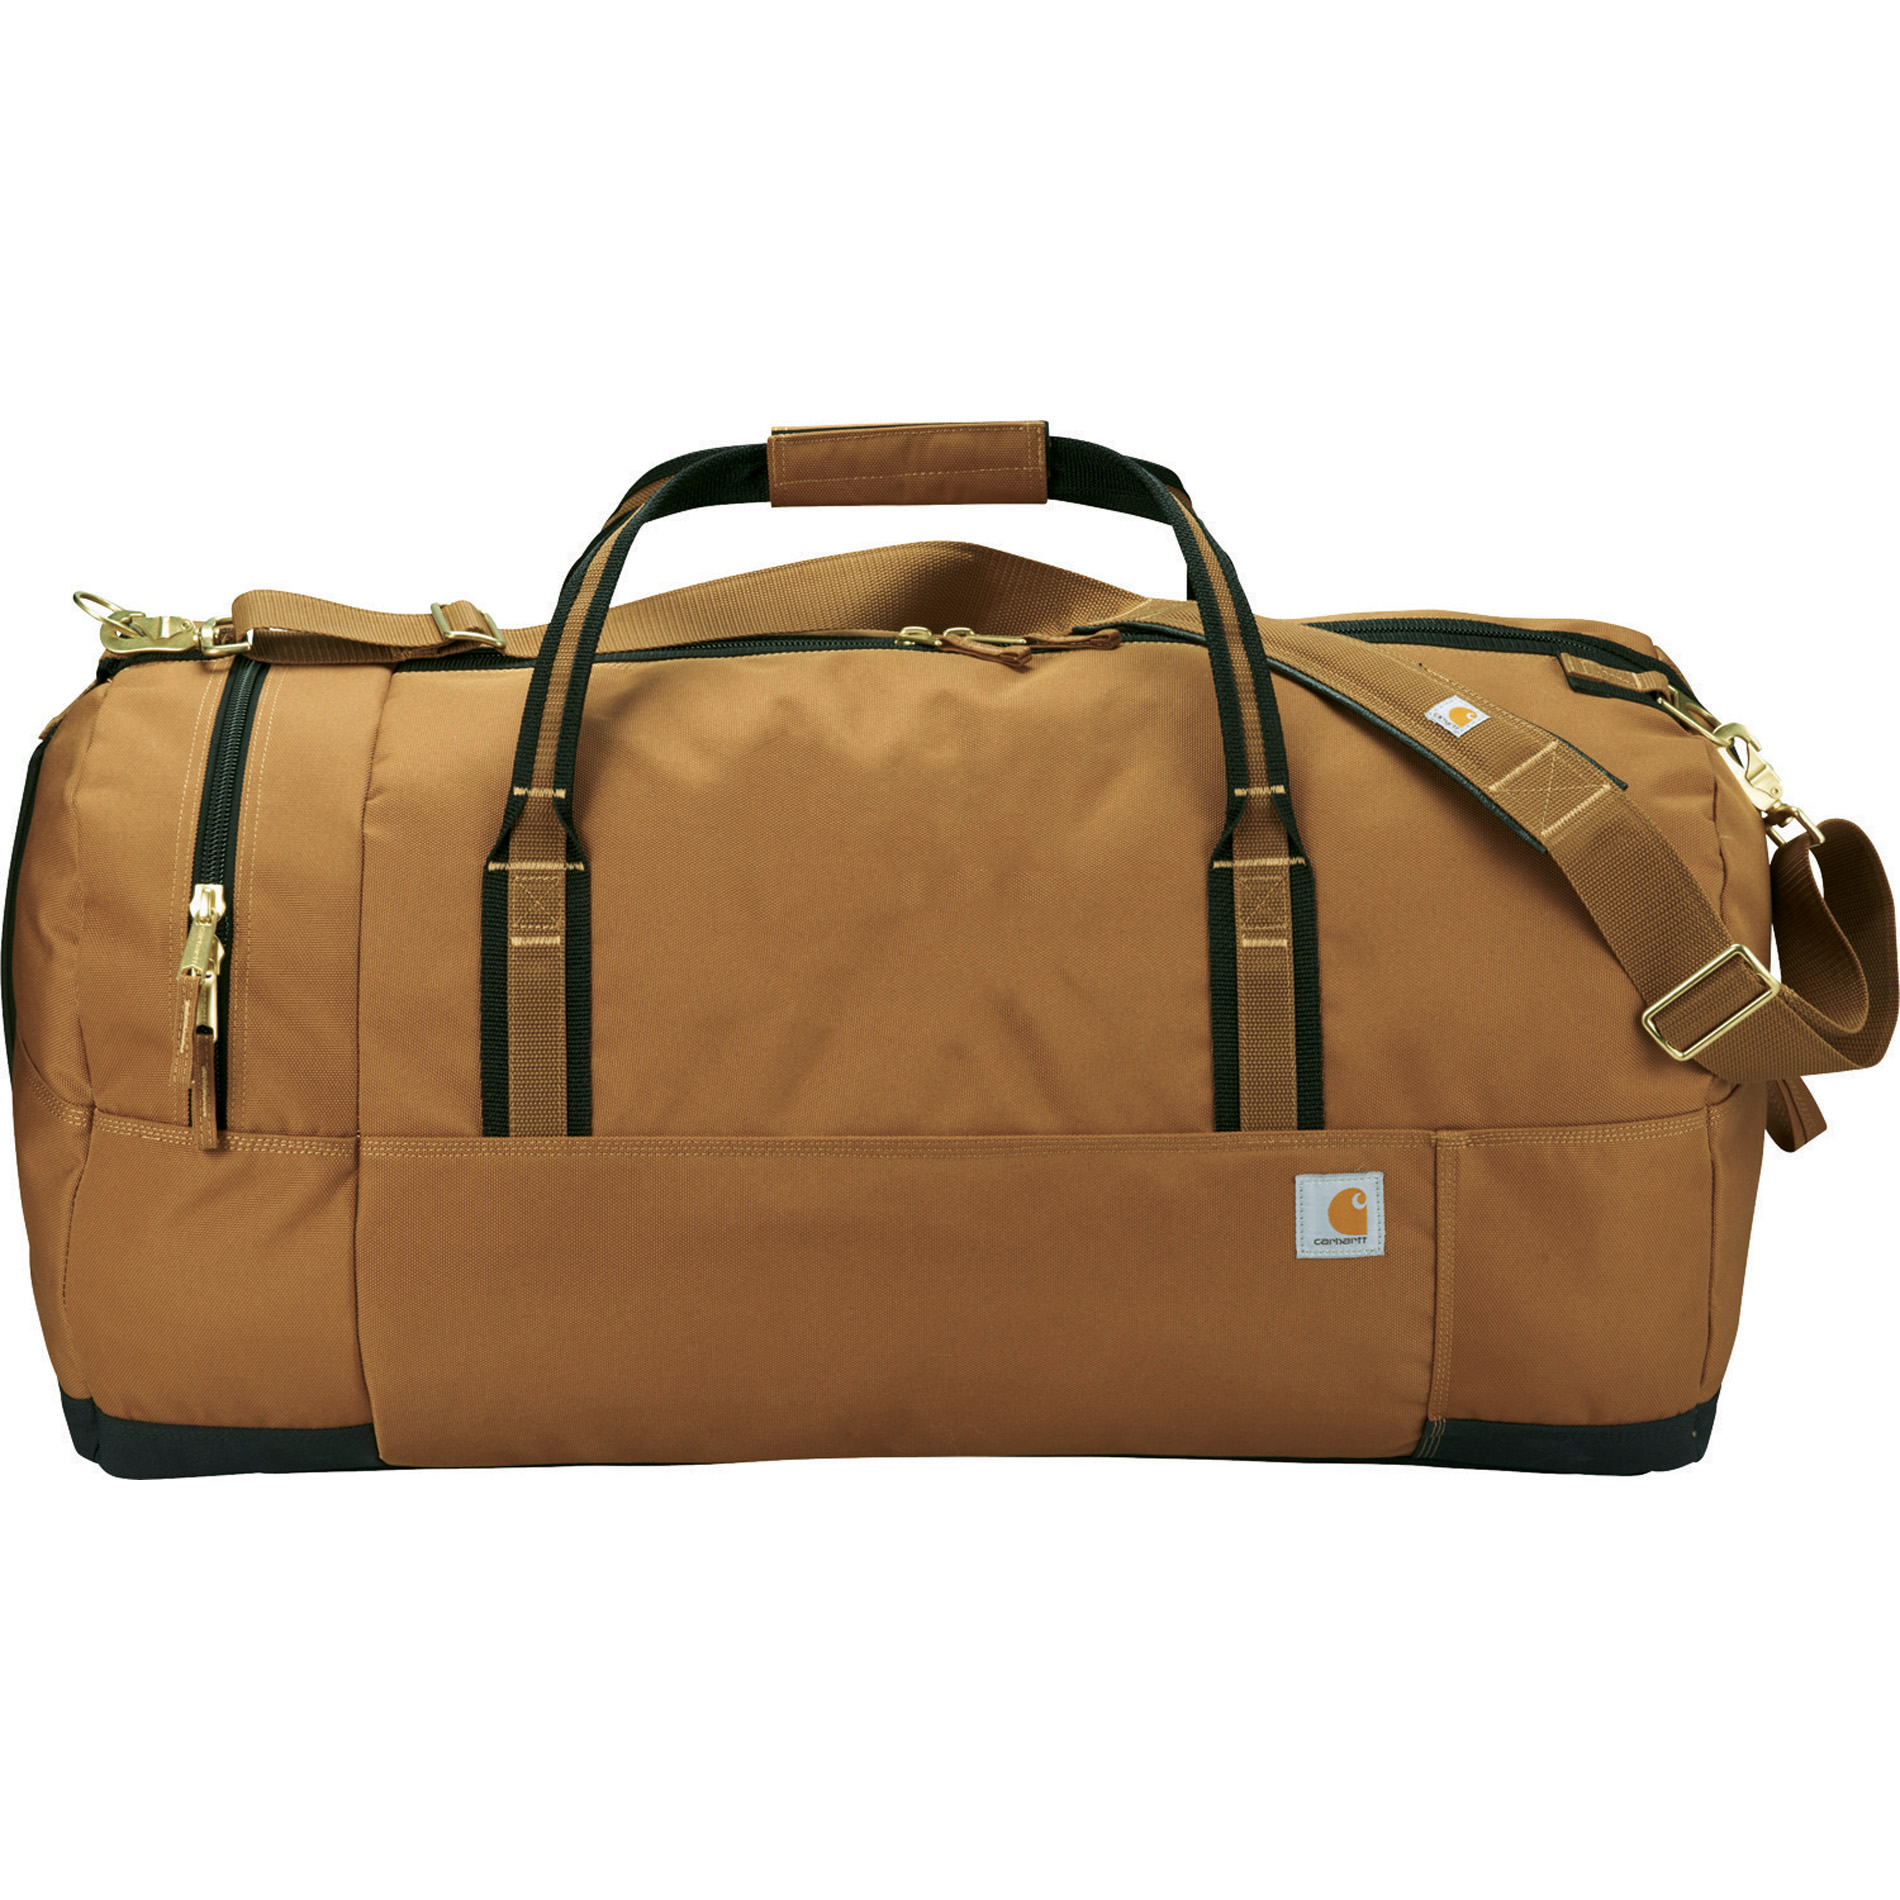 "Carhartt 1889-21 - Signature 30"" Work Duffel Bag"